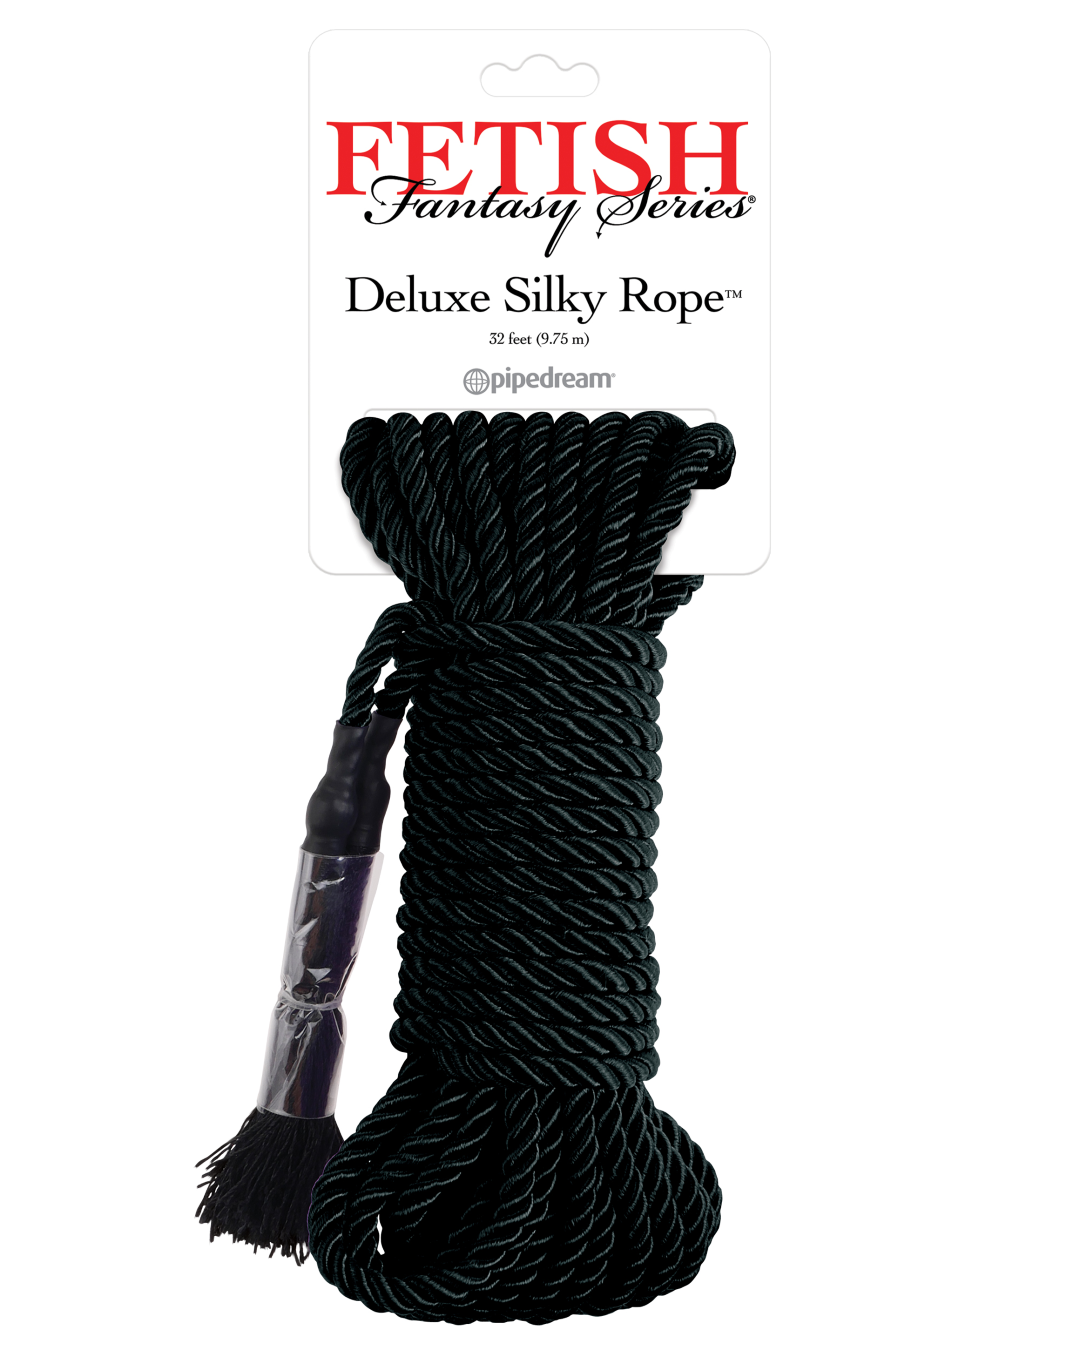 Fetish Fantasy Japanese Silk Rope 35 Feet - Black